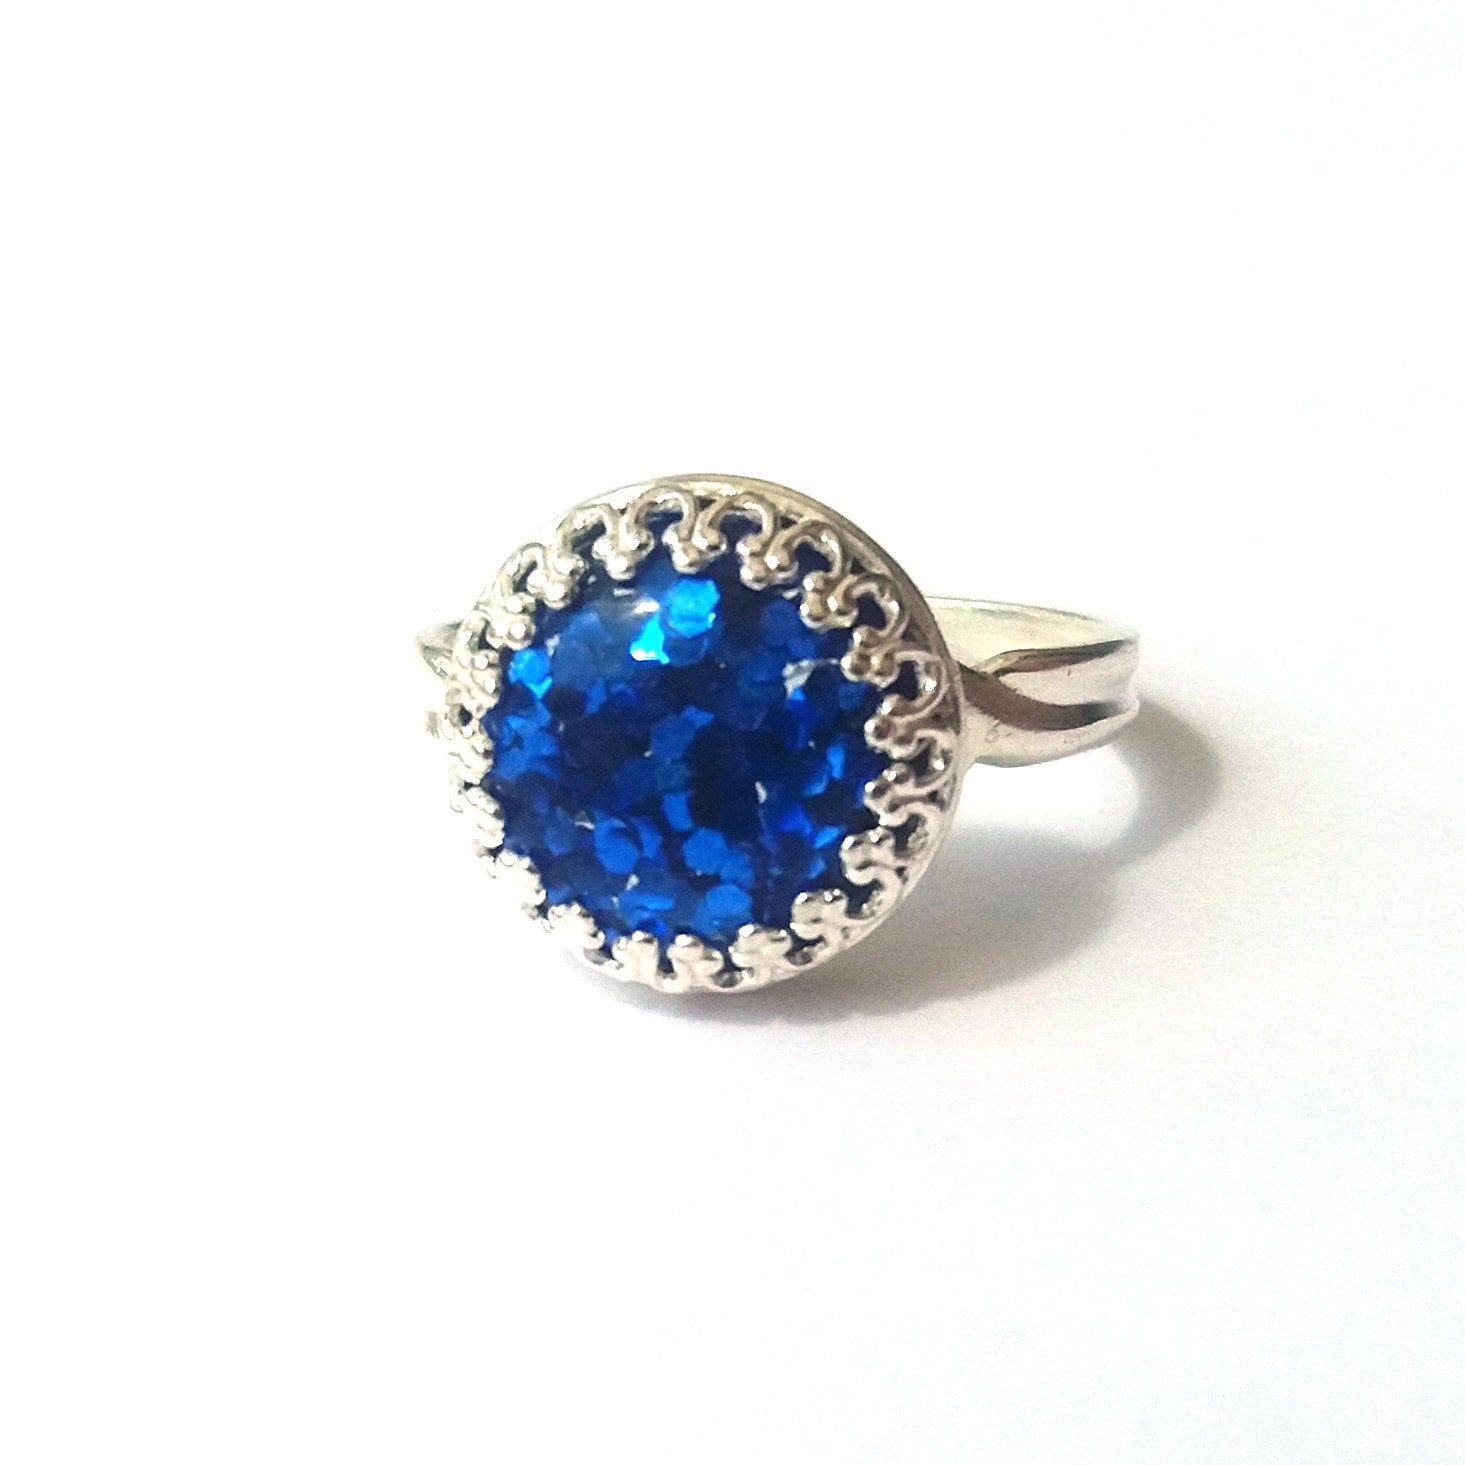 Sapphire Blue Glitter Ring, Sterling Silver Ring, Glitter Cabochon, Blue Ring, Sparkle Ring, More Colours, Or Choose Gold, Rose Gold Pertaining To 2017 Blue Sparkling Crown Rings (View 2 of 25)